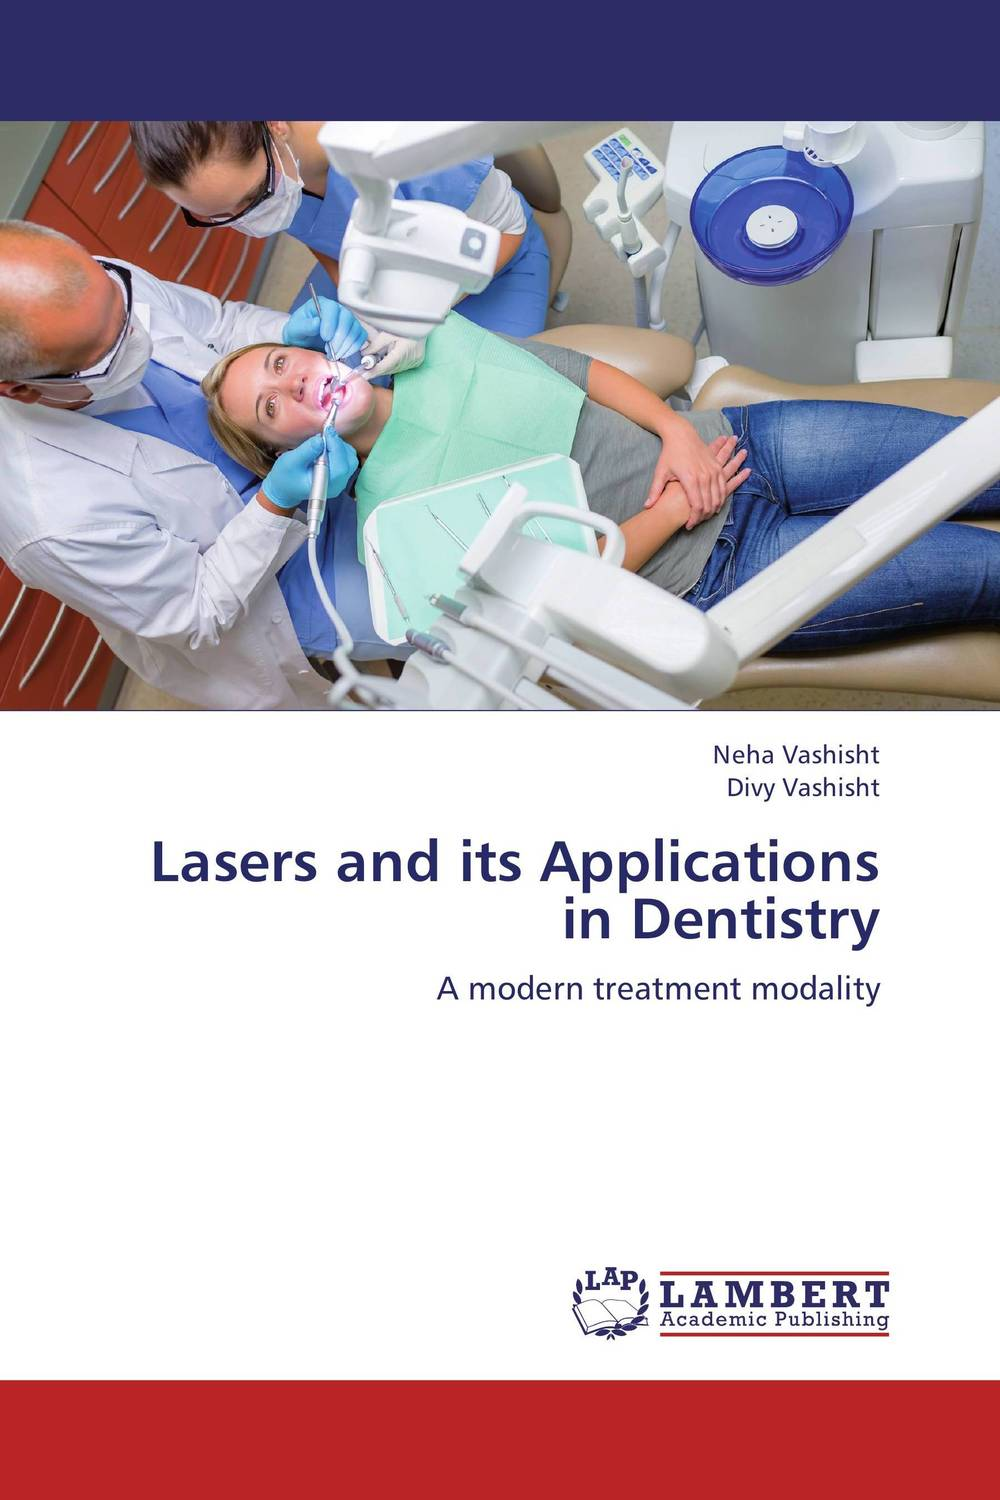 Lasers and its Applications in Dentistry lasers in the field of dentistry